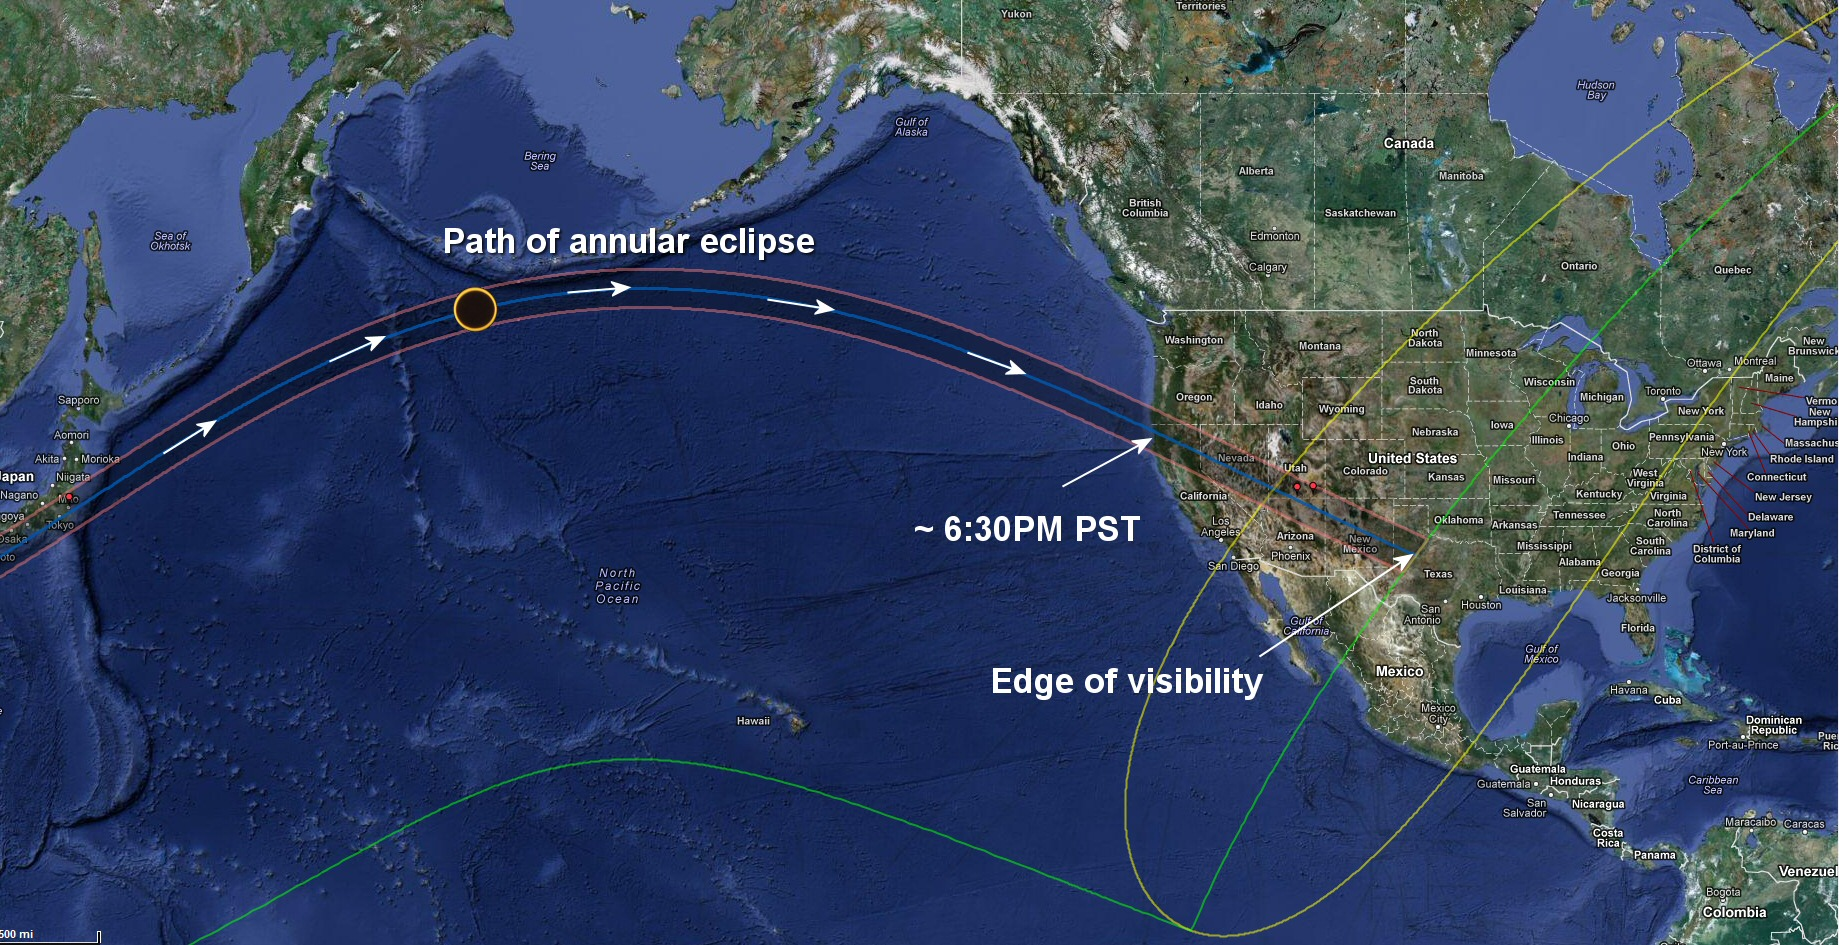 Partial Solar Eclipse Map.Annular Solar Eclipse 2012 Data And Images Watts Up With That